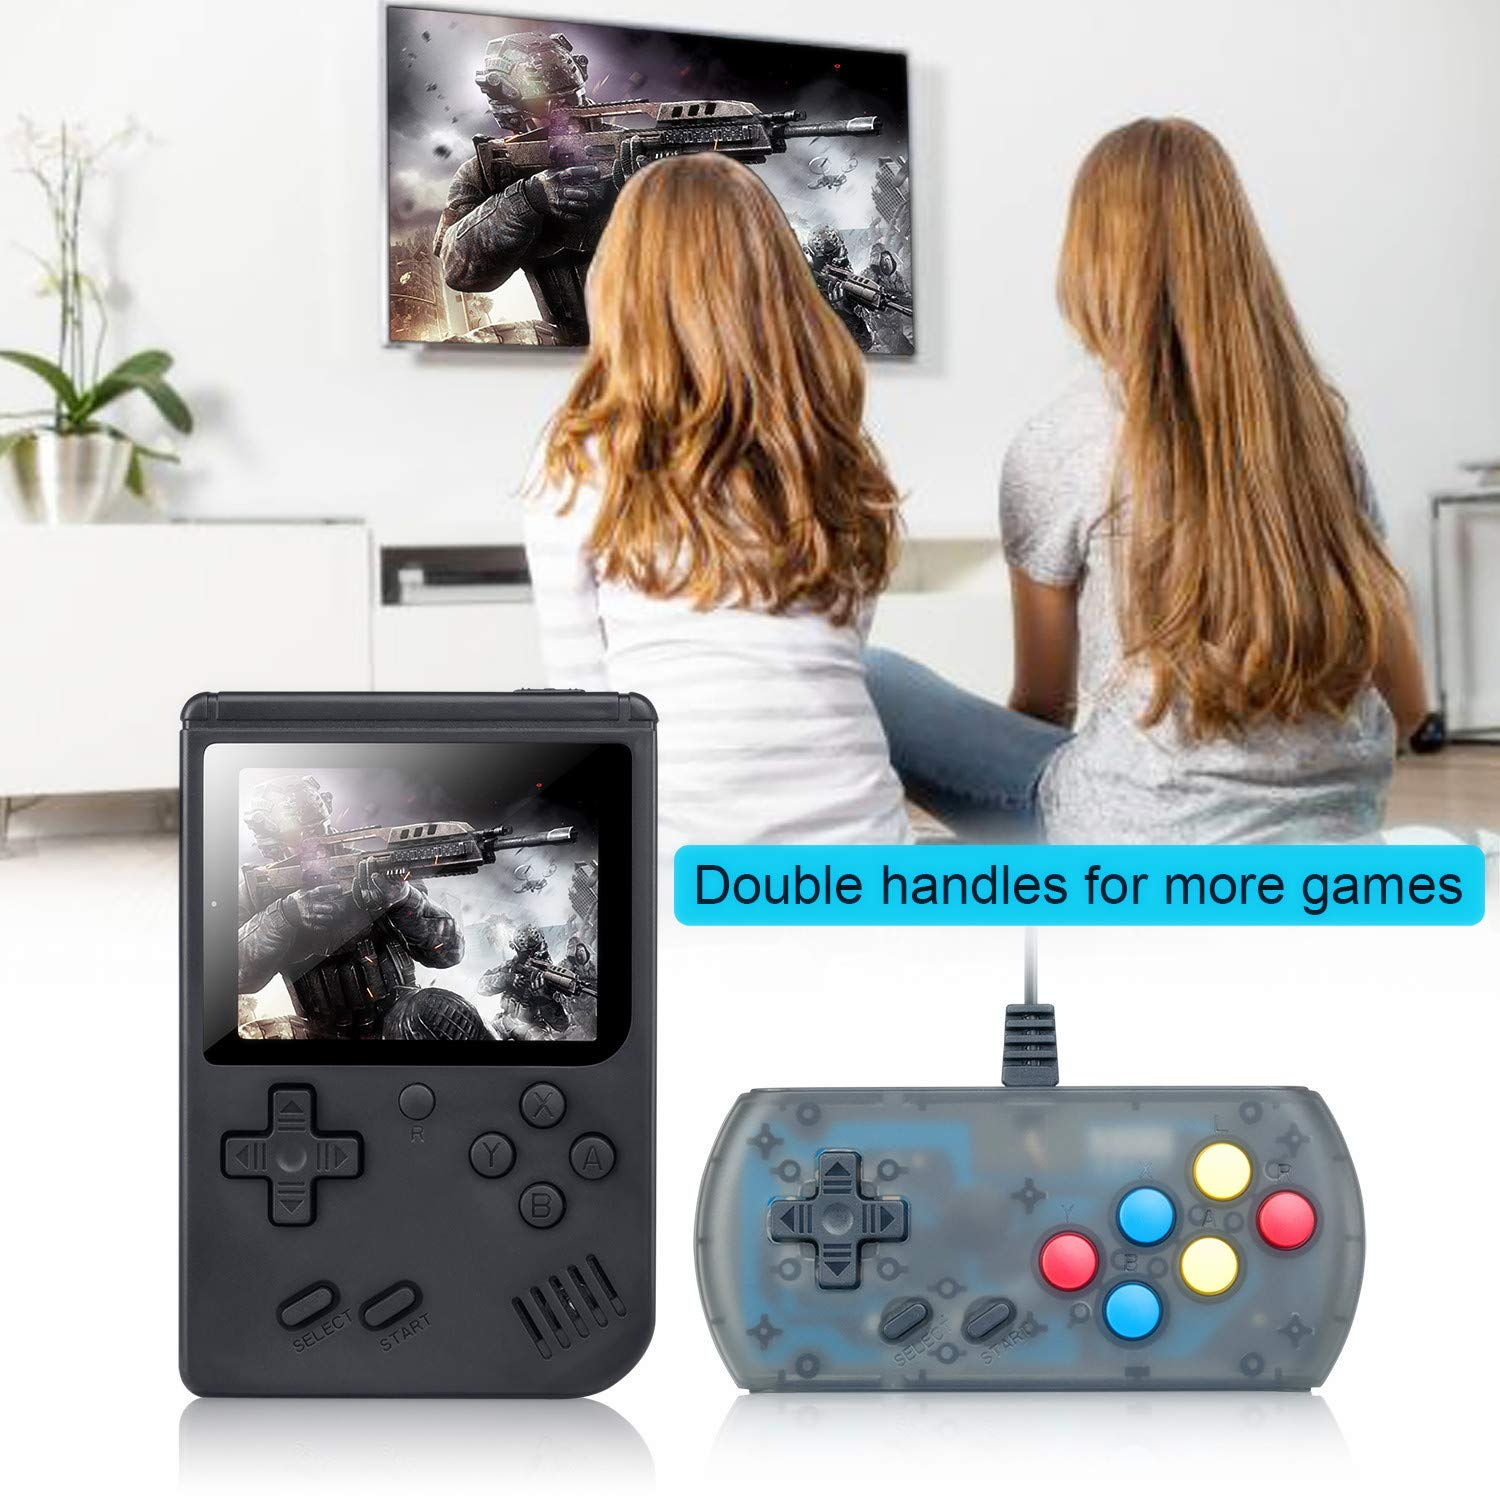 weikin Handheld Game Console, 168 Classic Games 3 Inch LCD Screen Portable Retro Video Game Console Support for Connecting TV and Two Players, Good Gifts for Kids and Adult. by weikin (Image #8)